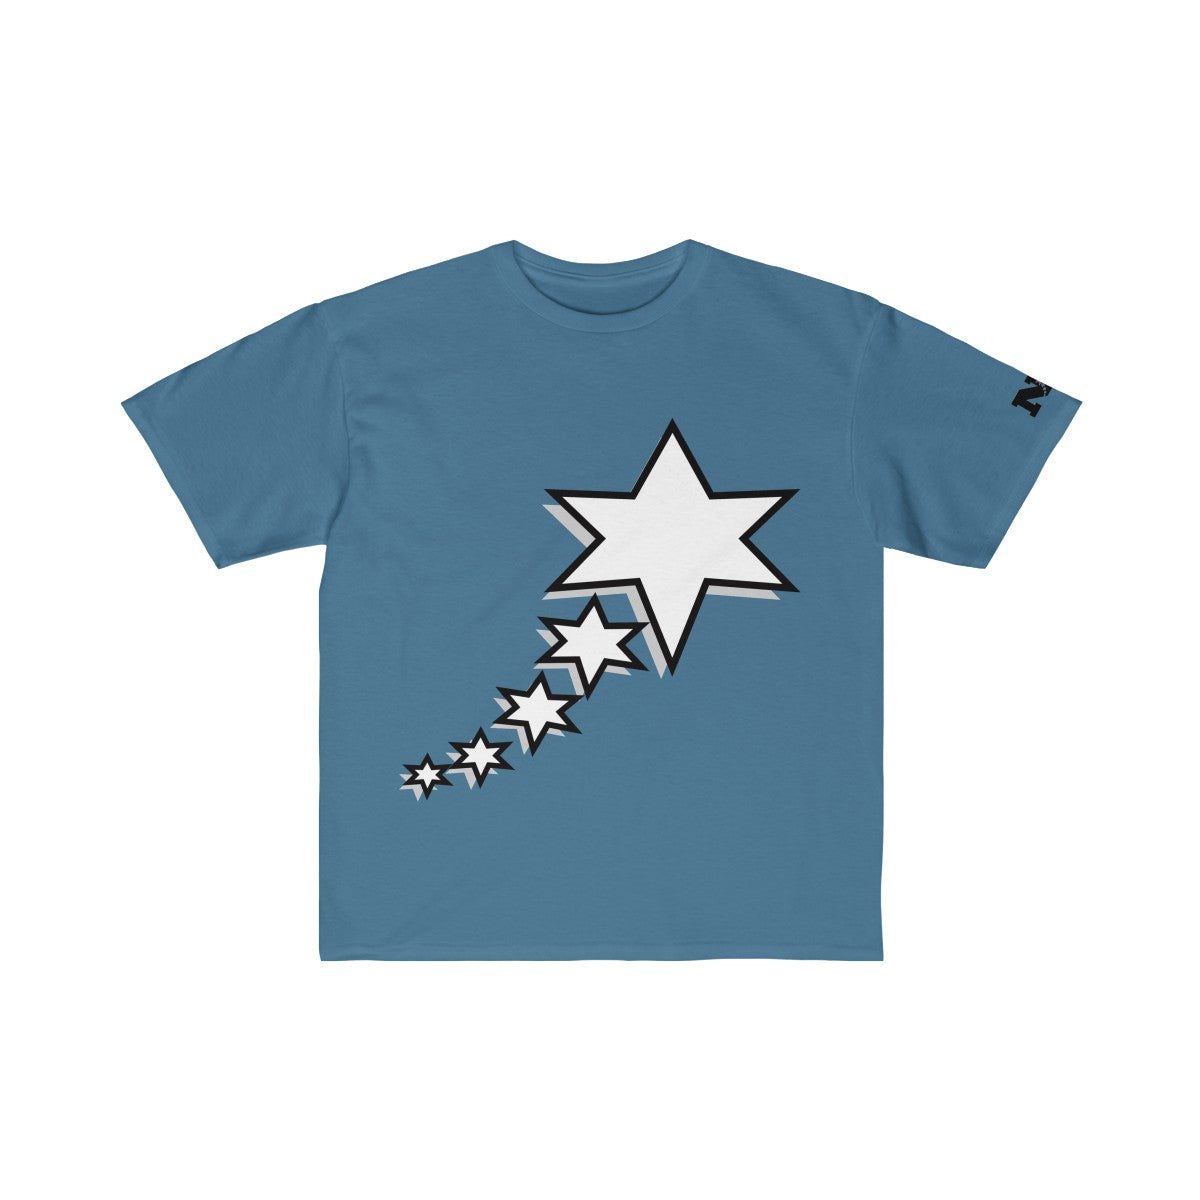 Kids Retail Fit Tee - 6 Points 5 Stars (White)